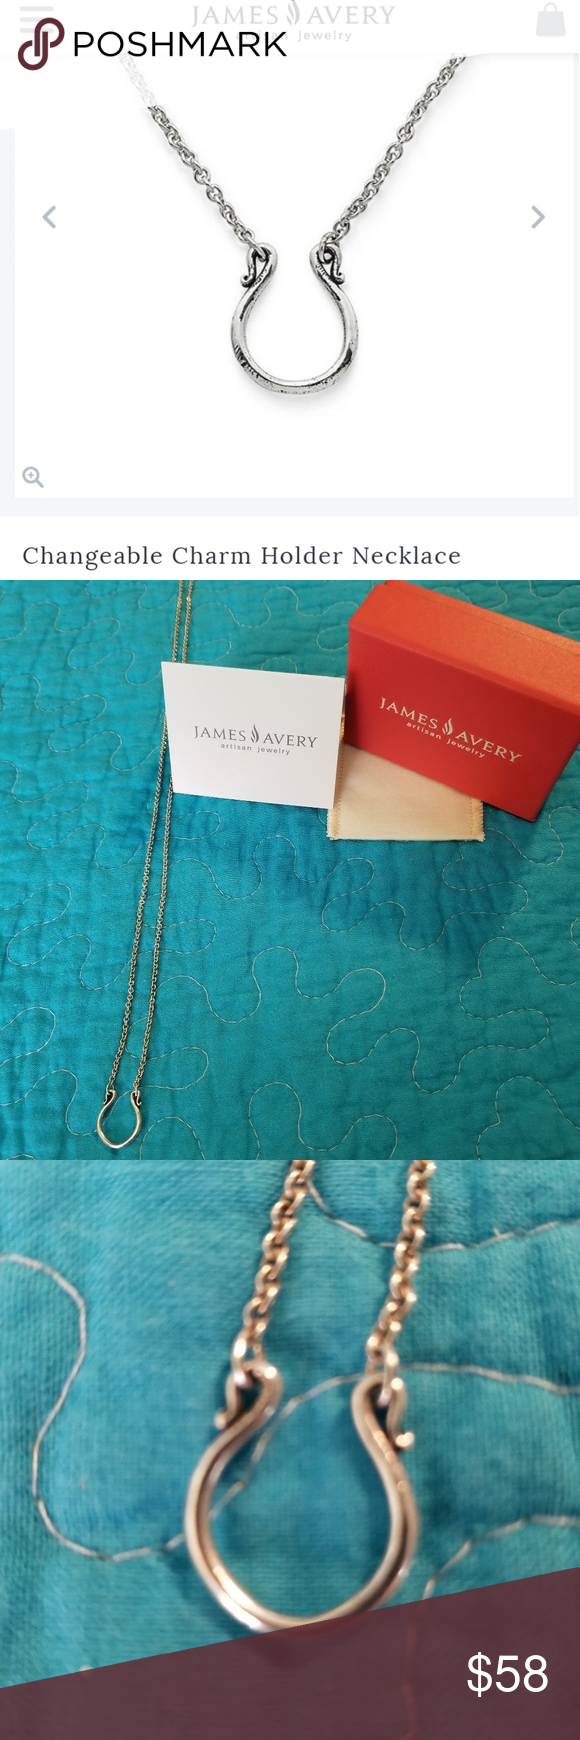 James Avery Changeable Charm Holder Necklace   Charm holder ...